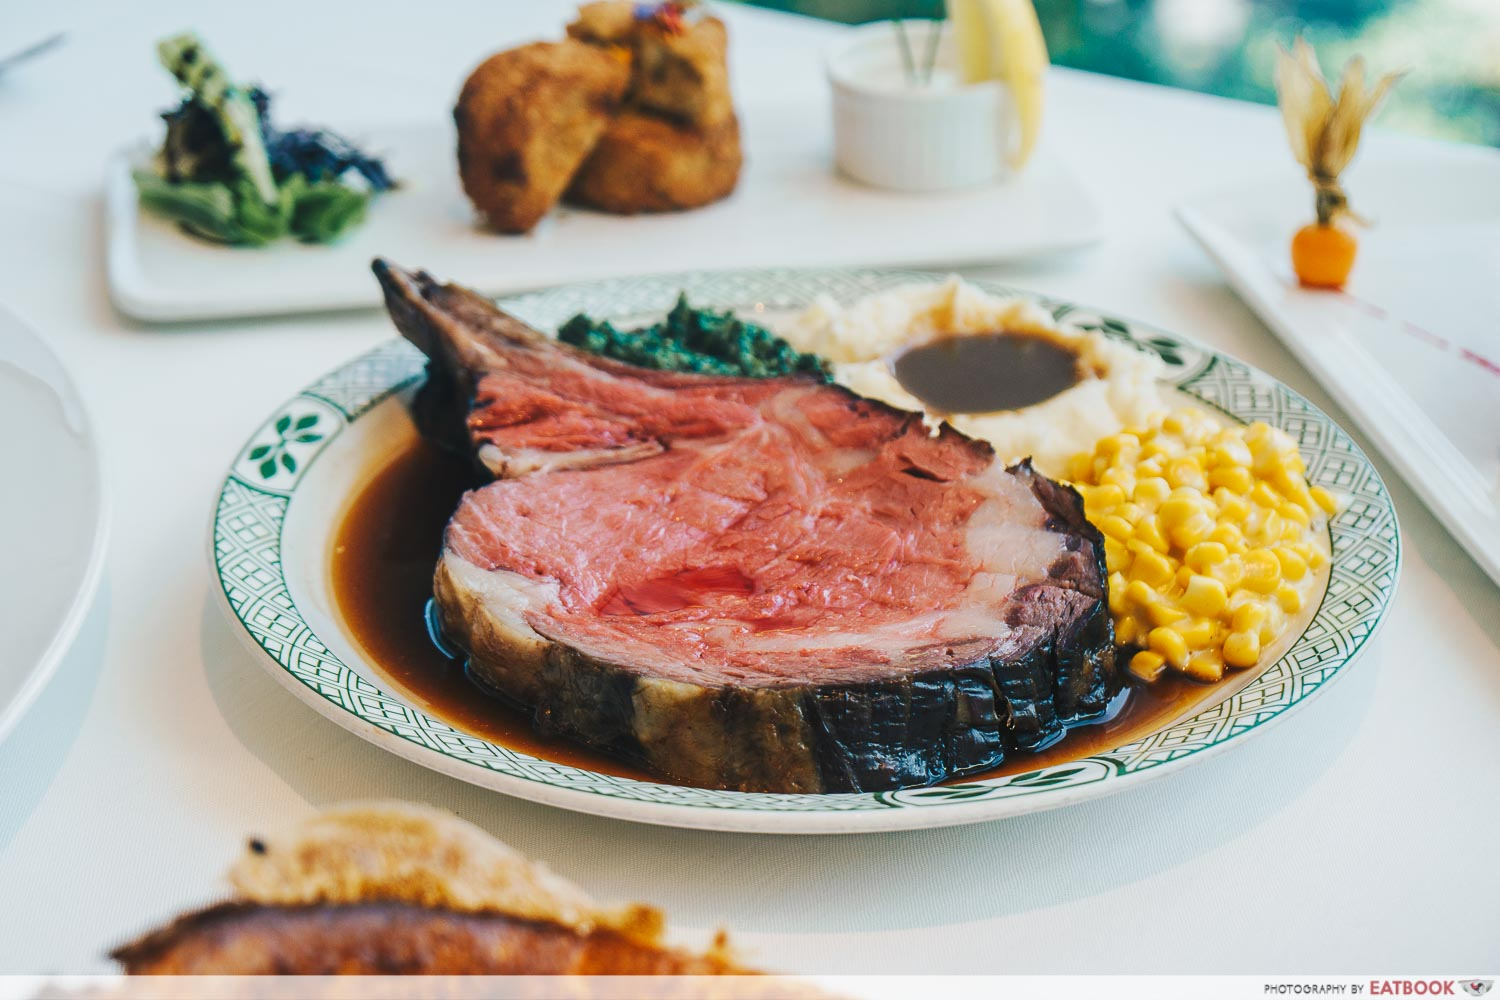 Meat Restaurant Lawry's The Prime Rib